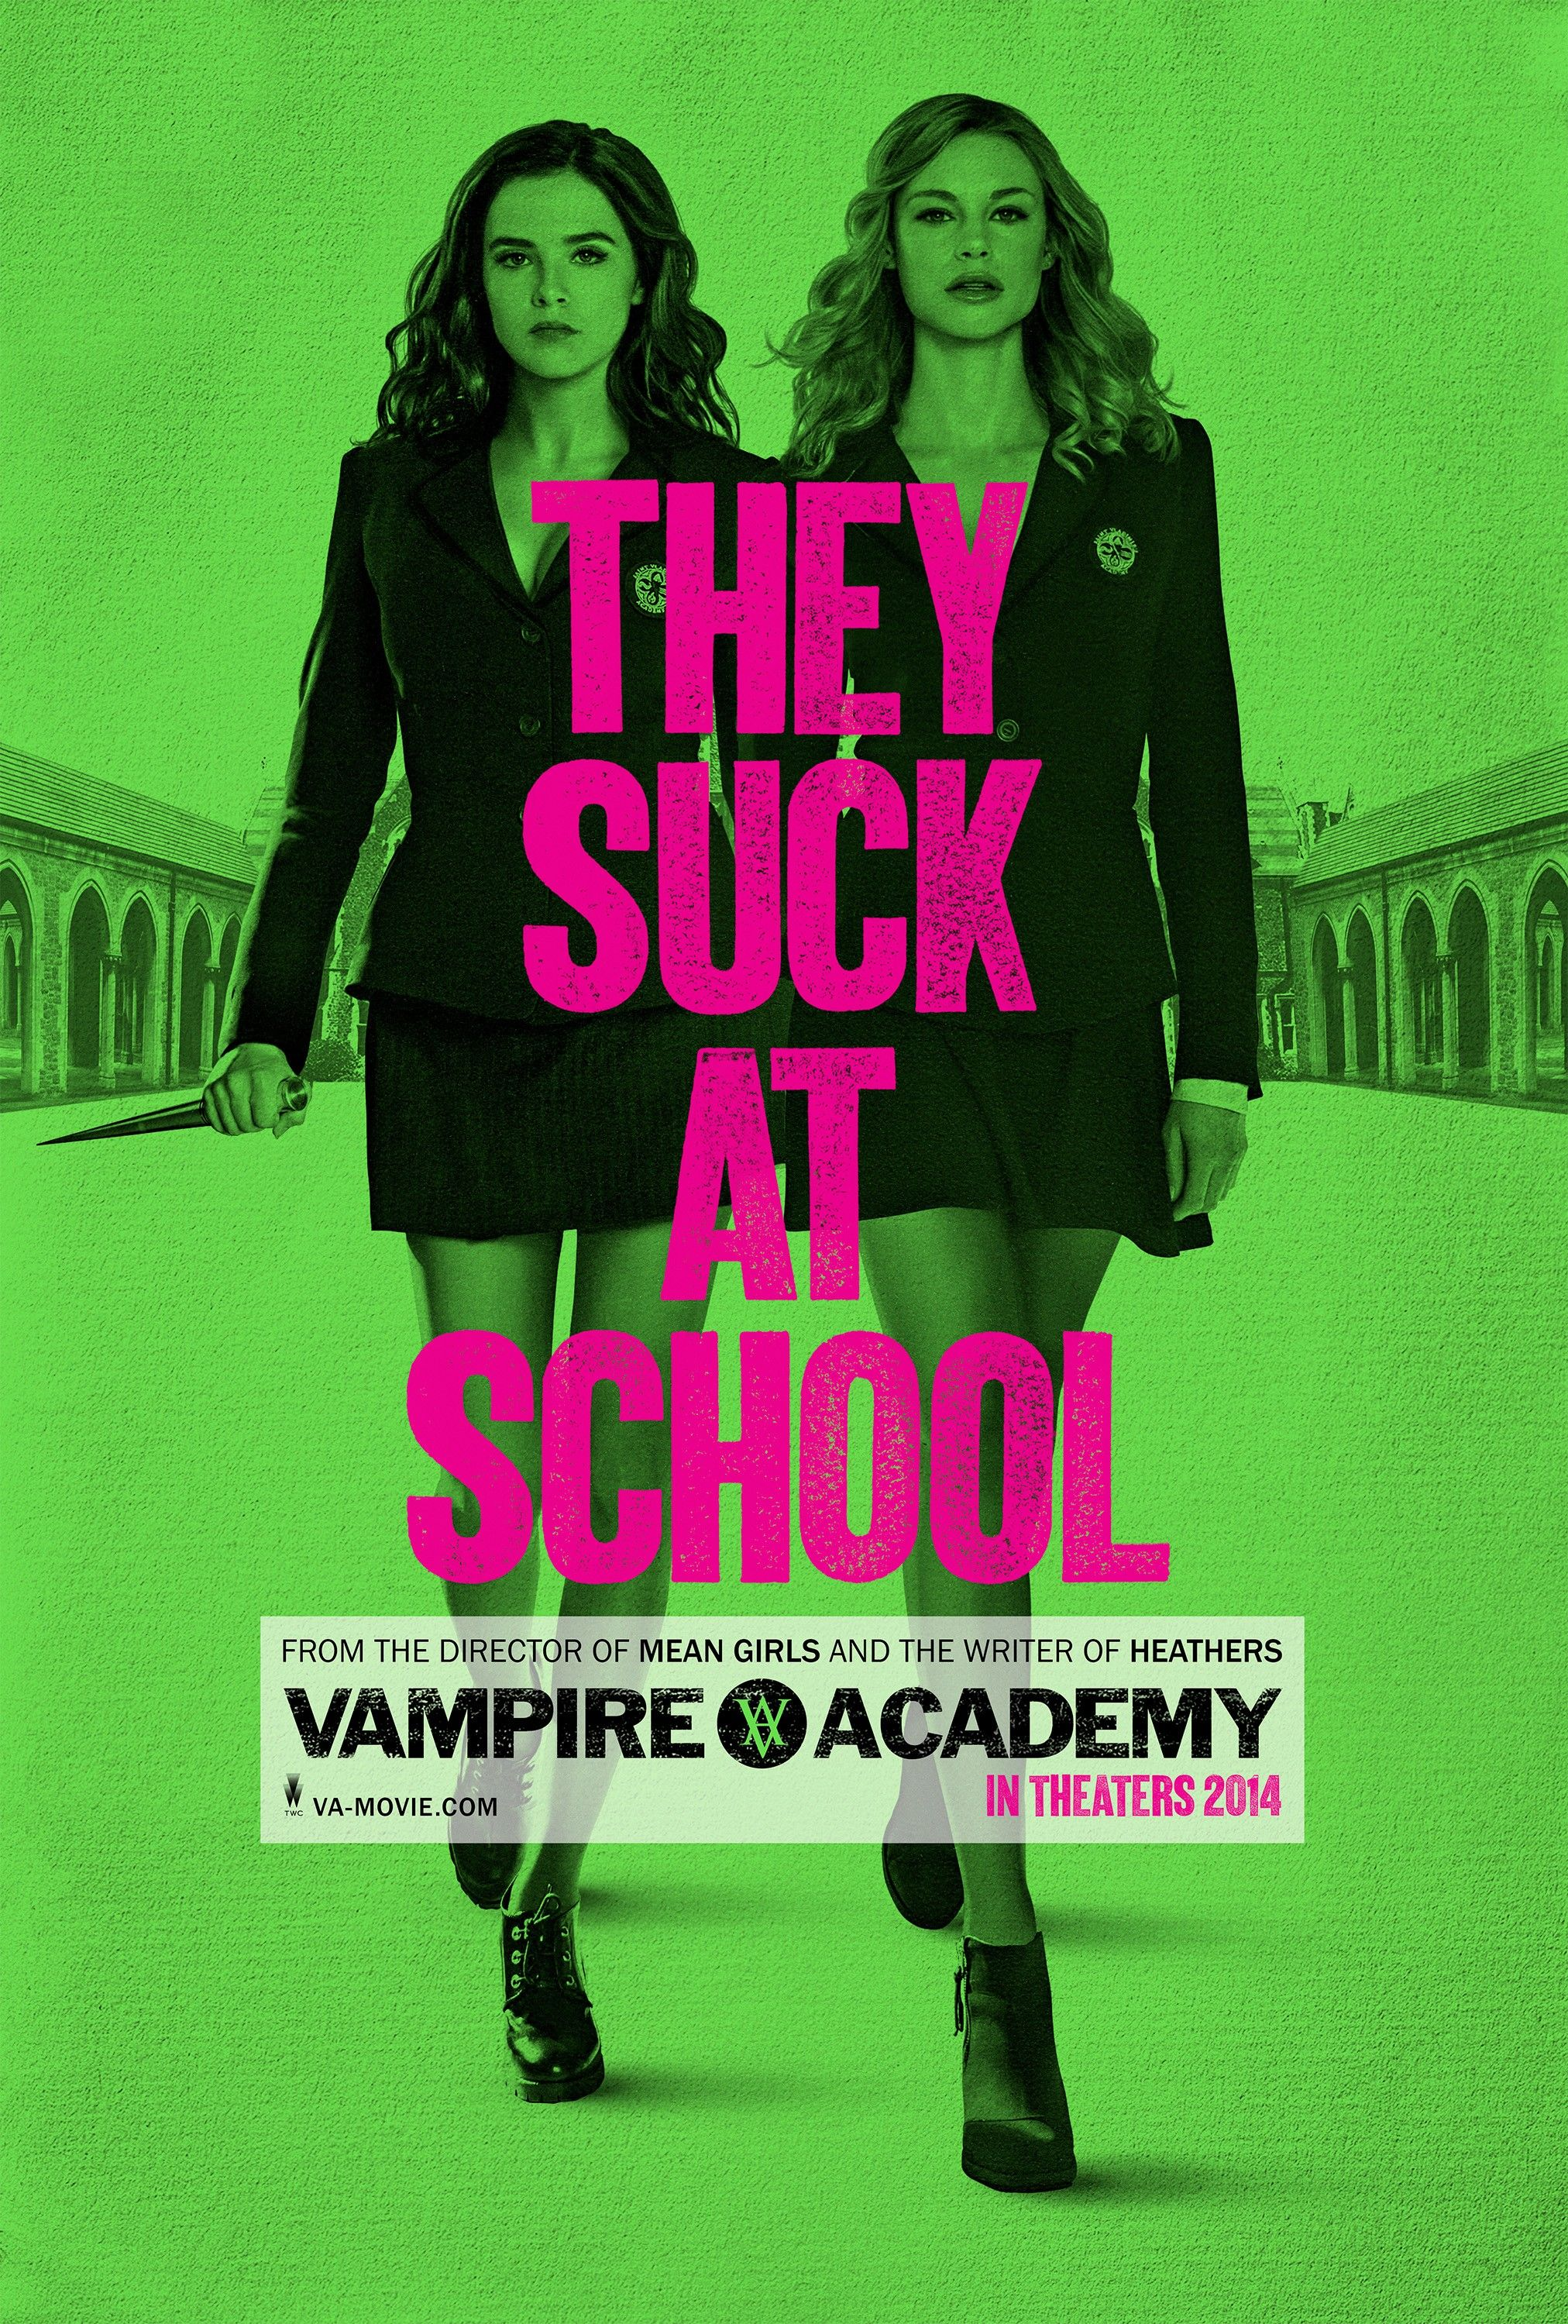 oldboy poster vampire academy poster bad grandpa poster the vampire academy poster